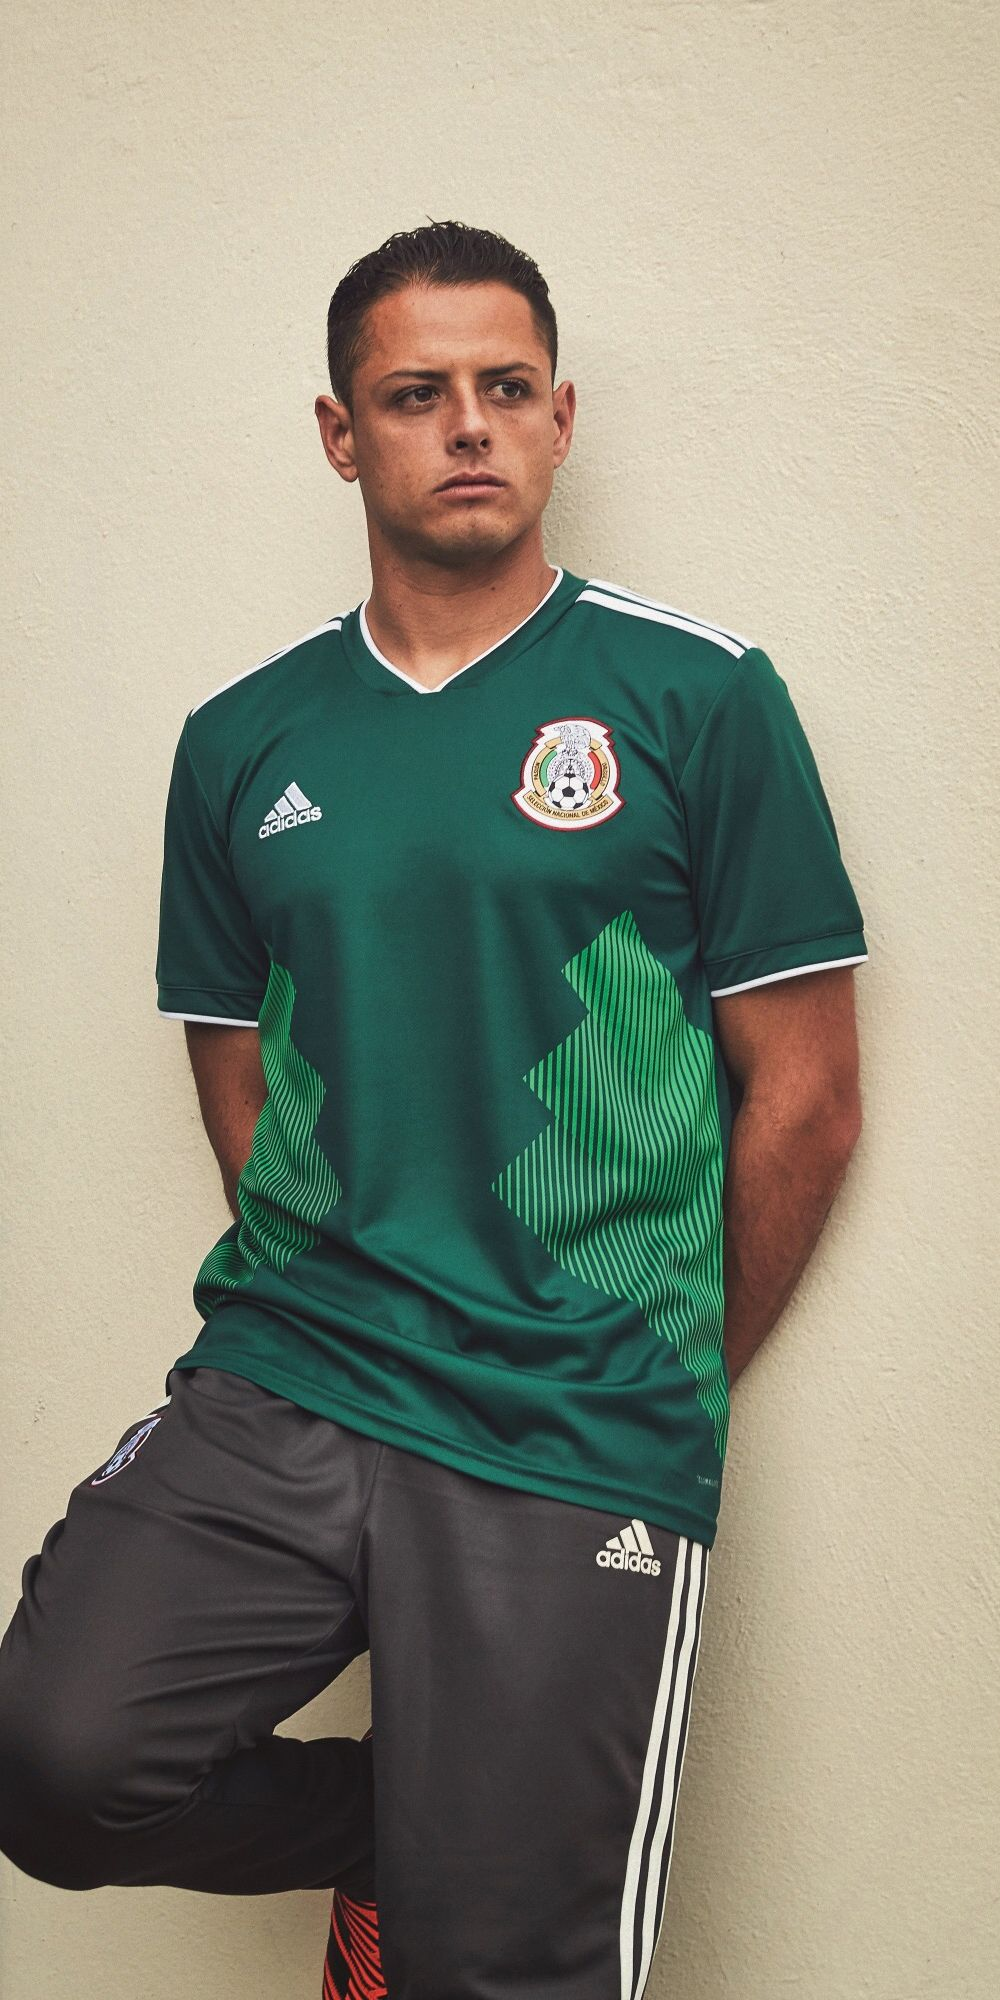 Chicharito in the adidas 2018 Mexico home jersey  2b80d267f